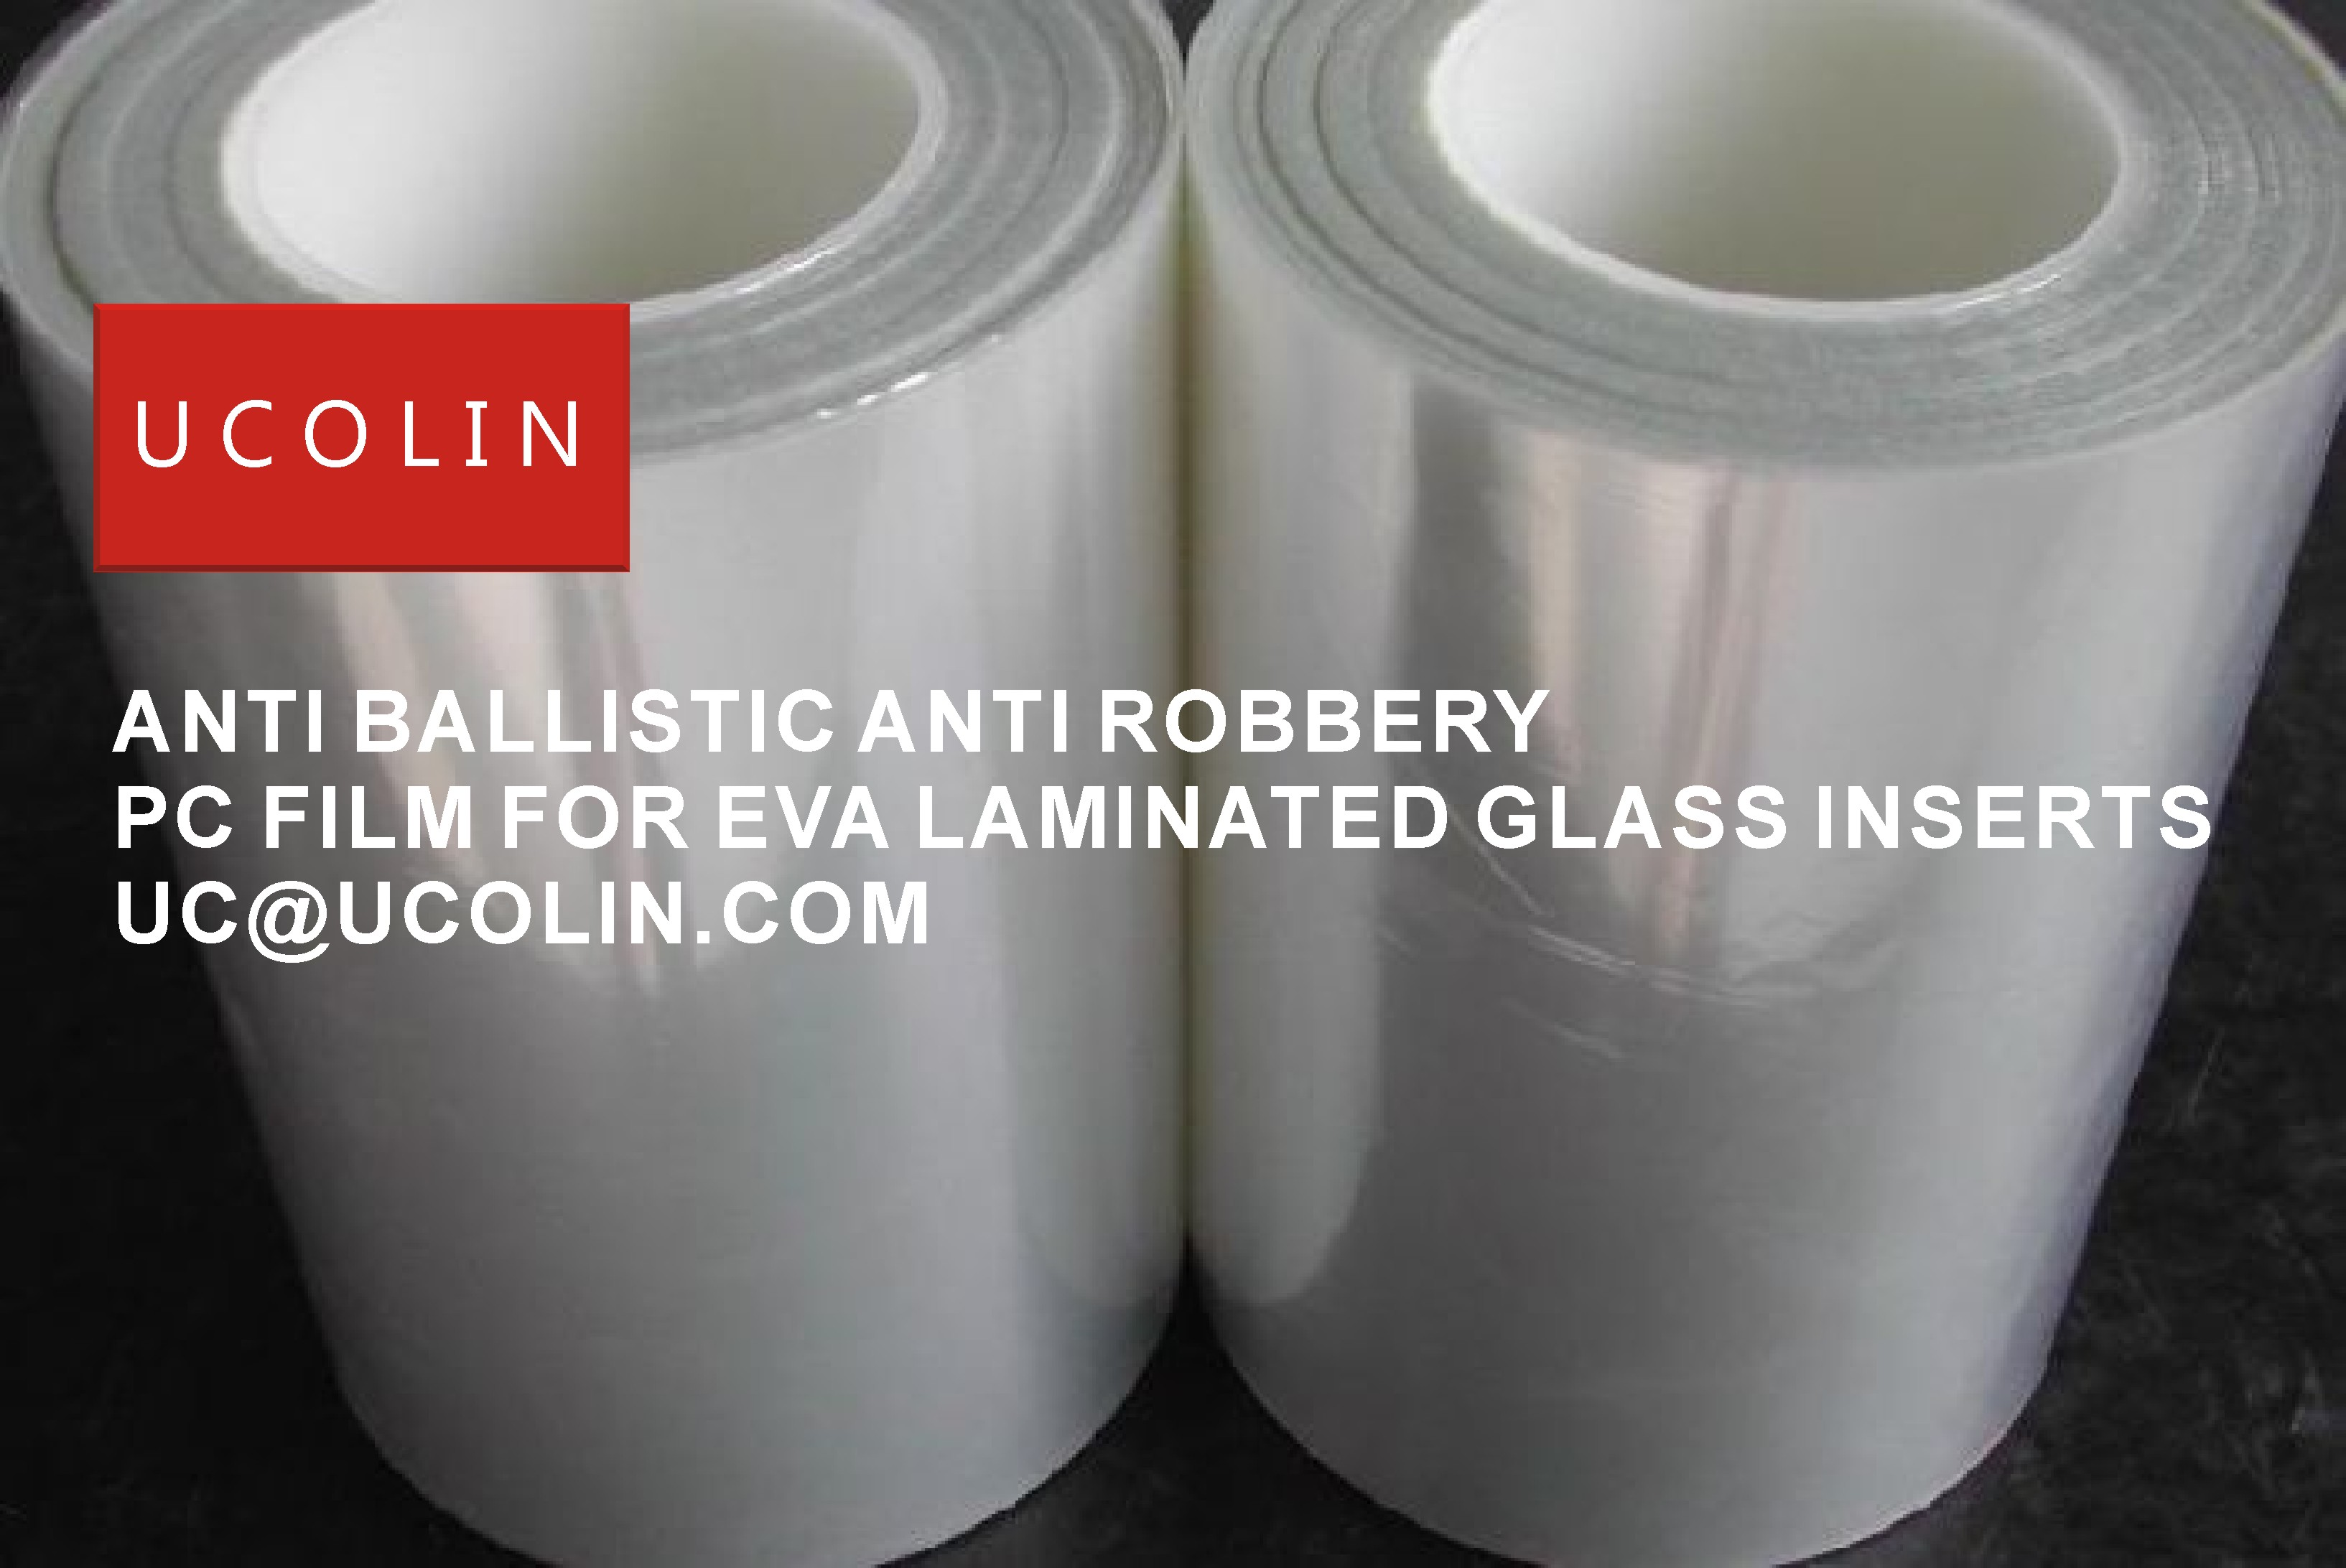 06 ANTI BALLISTIC ANTI ROBBERY PC FILM FOR EVA LAMINATED GLASS INERTS